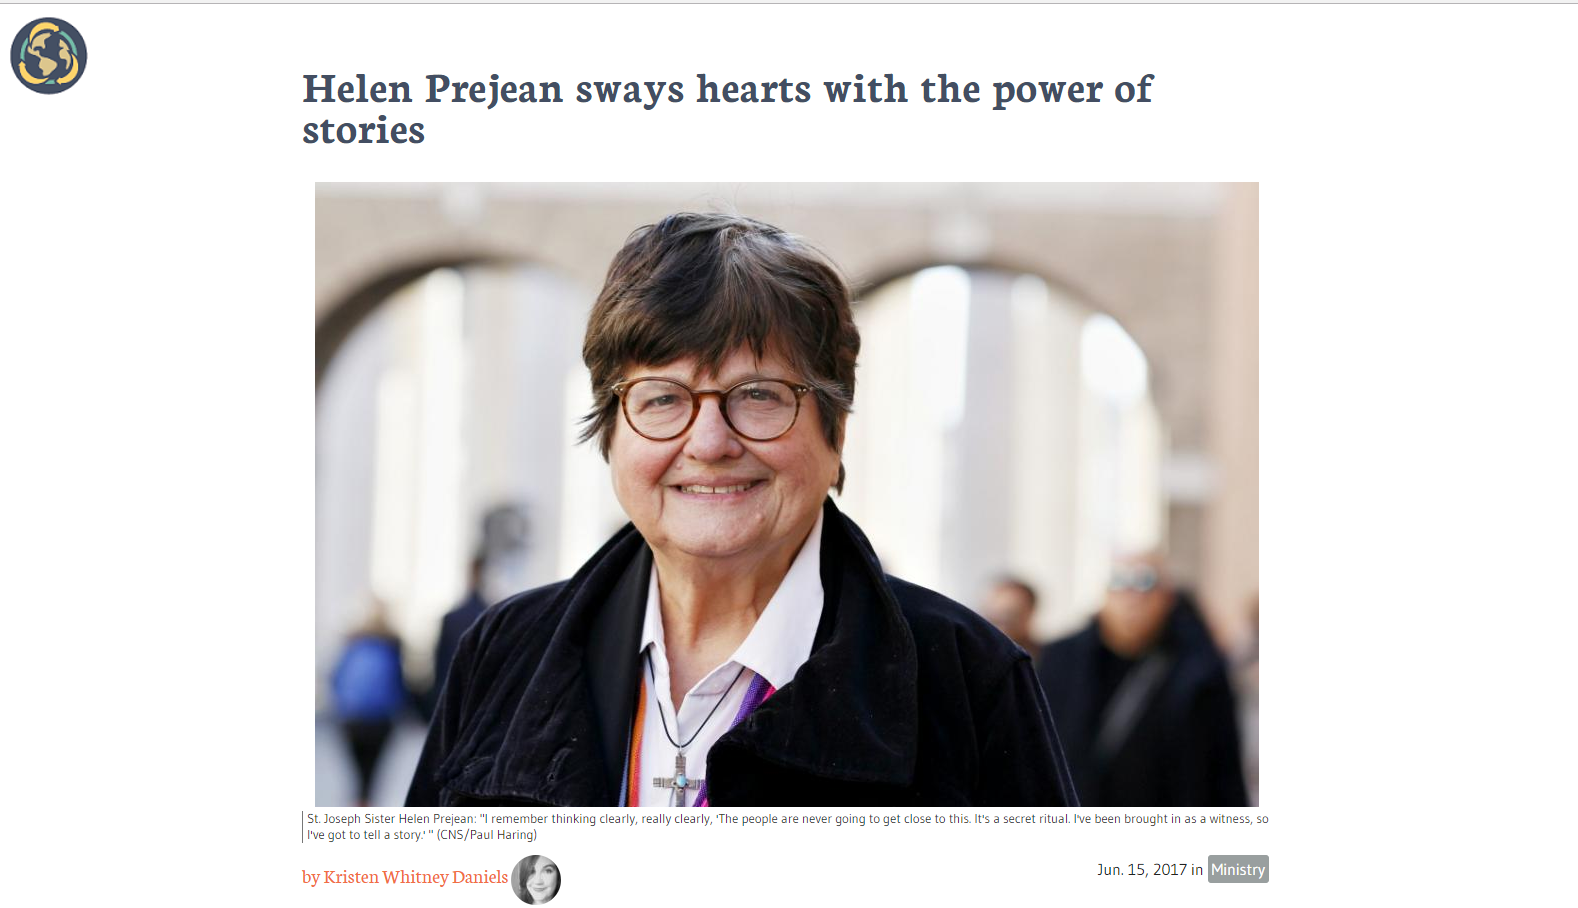 """Helen Prejean sways hearts with the power of stories"" by Kristen Whitney Daniels"